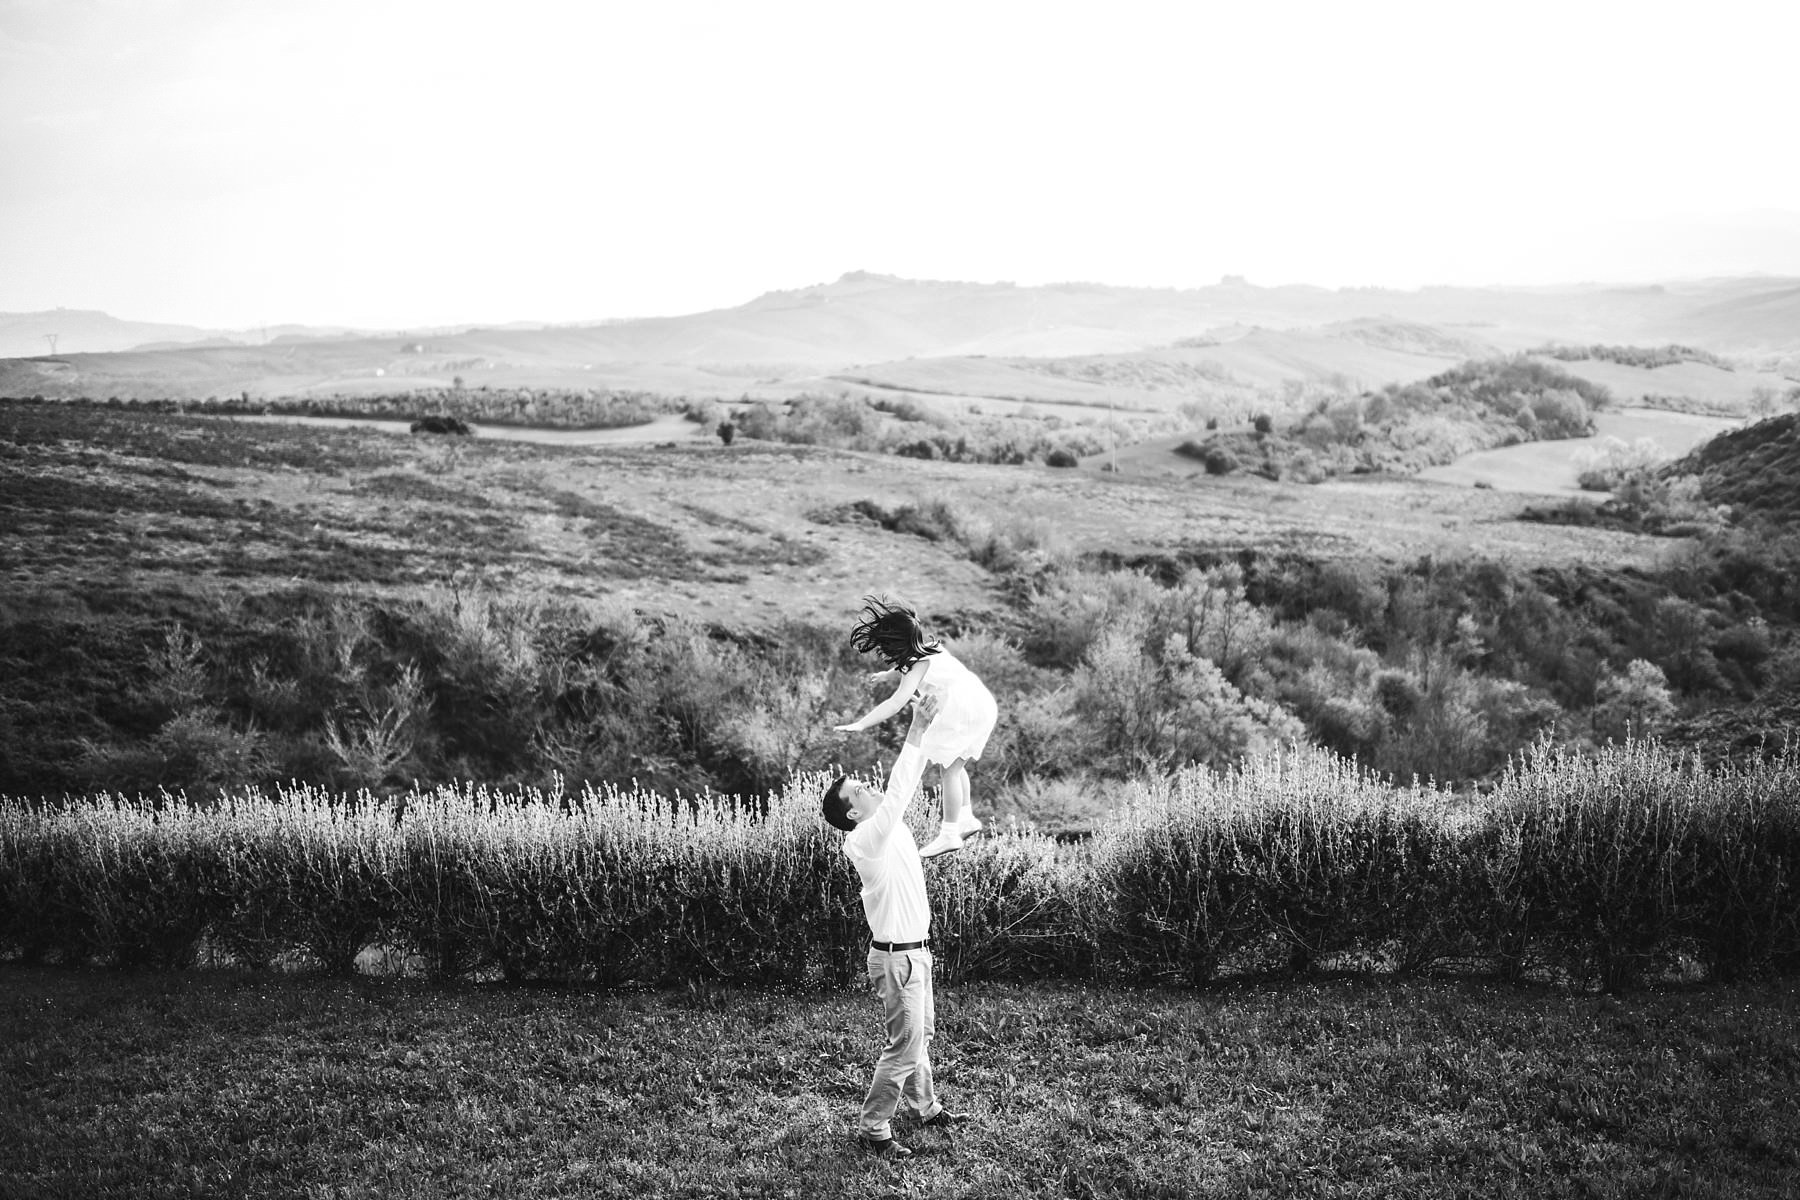 Dad and daughter are playing during a family photo session took place in a summer day in Tuscany countryside